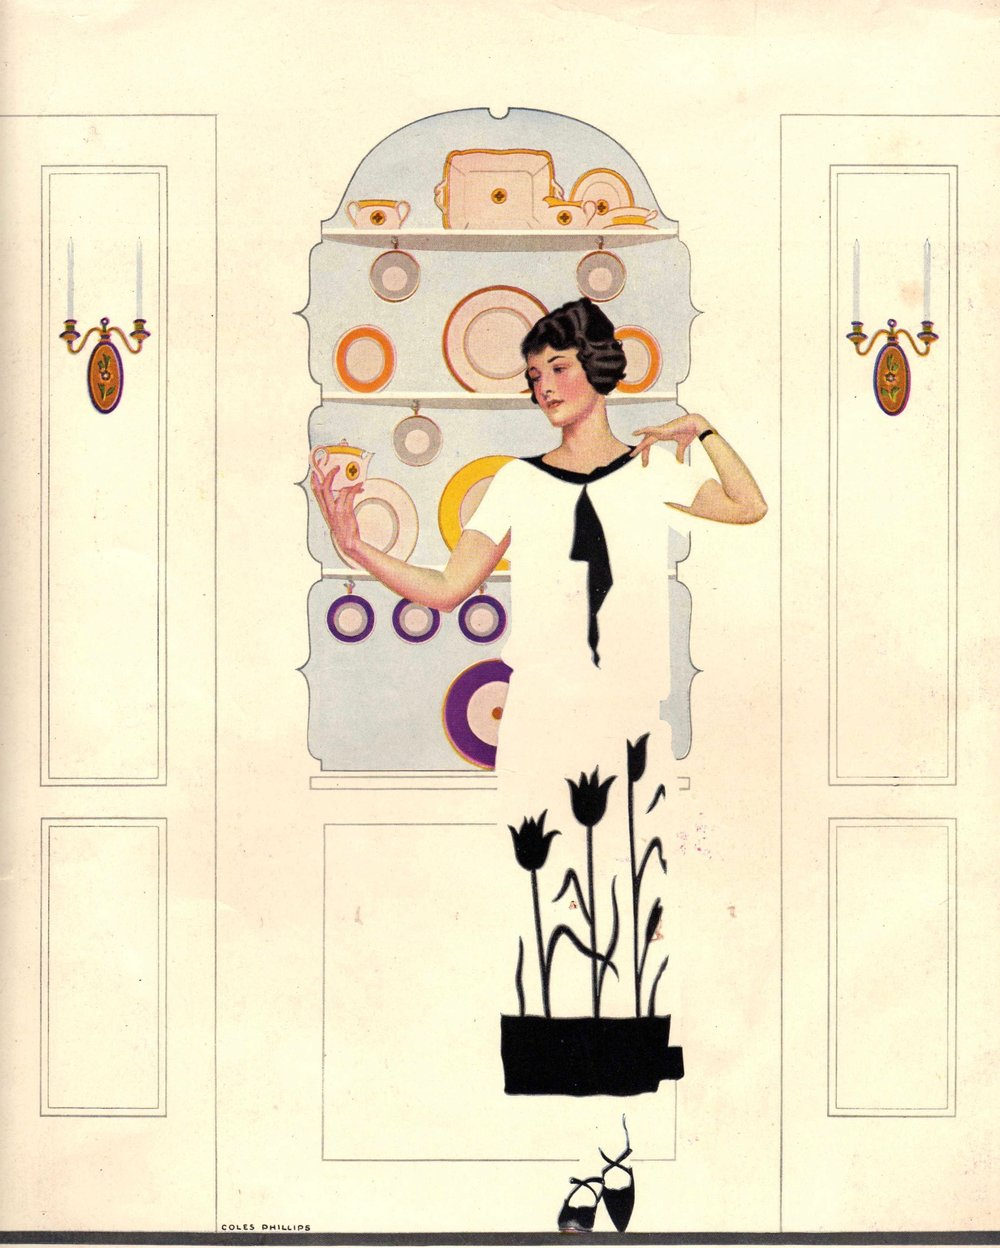 Illustration by Coles Phillips.